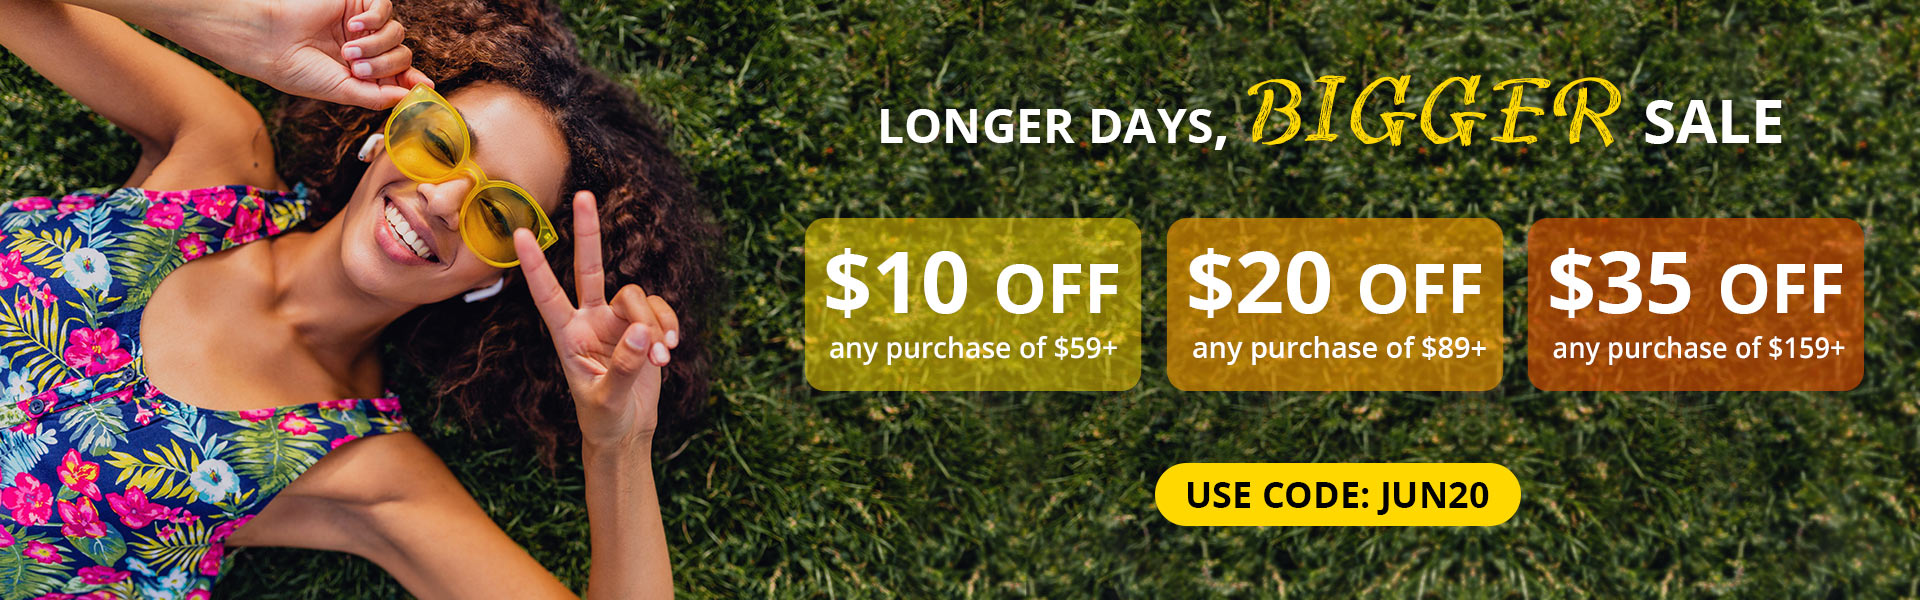 JUN20 pc lb 210601 - Glasses Sale: $20 OFF any purchase of $89+; $35 OFF any purchase of $159+